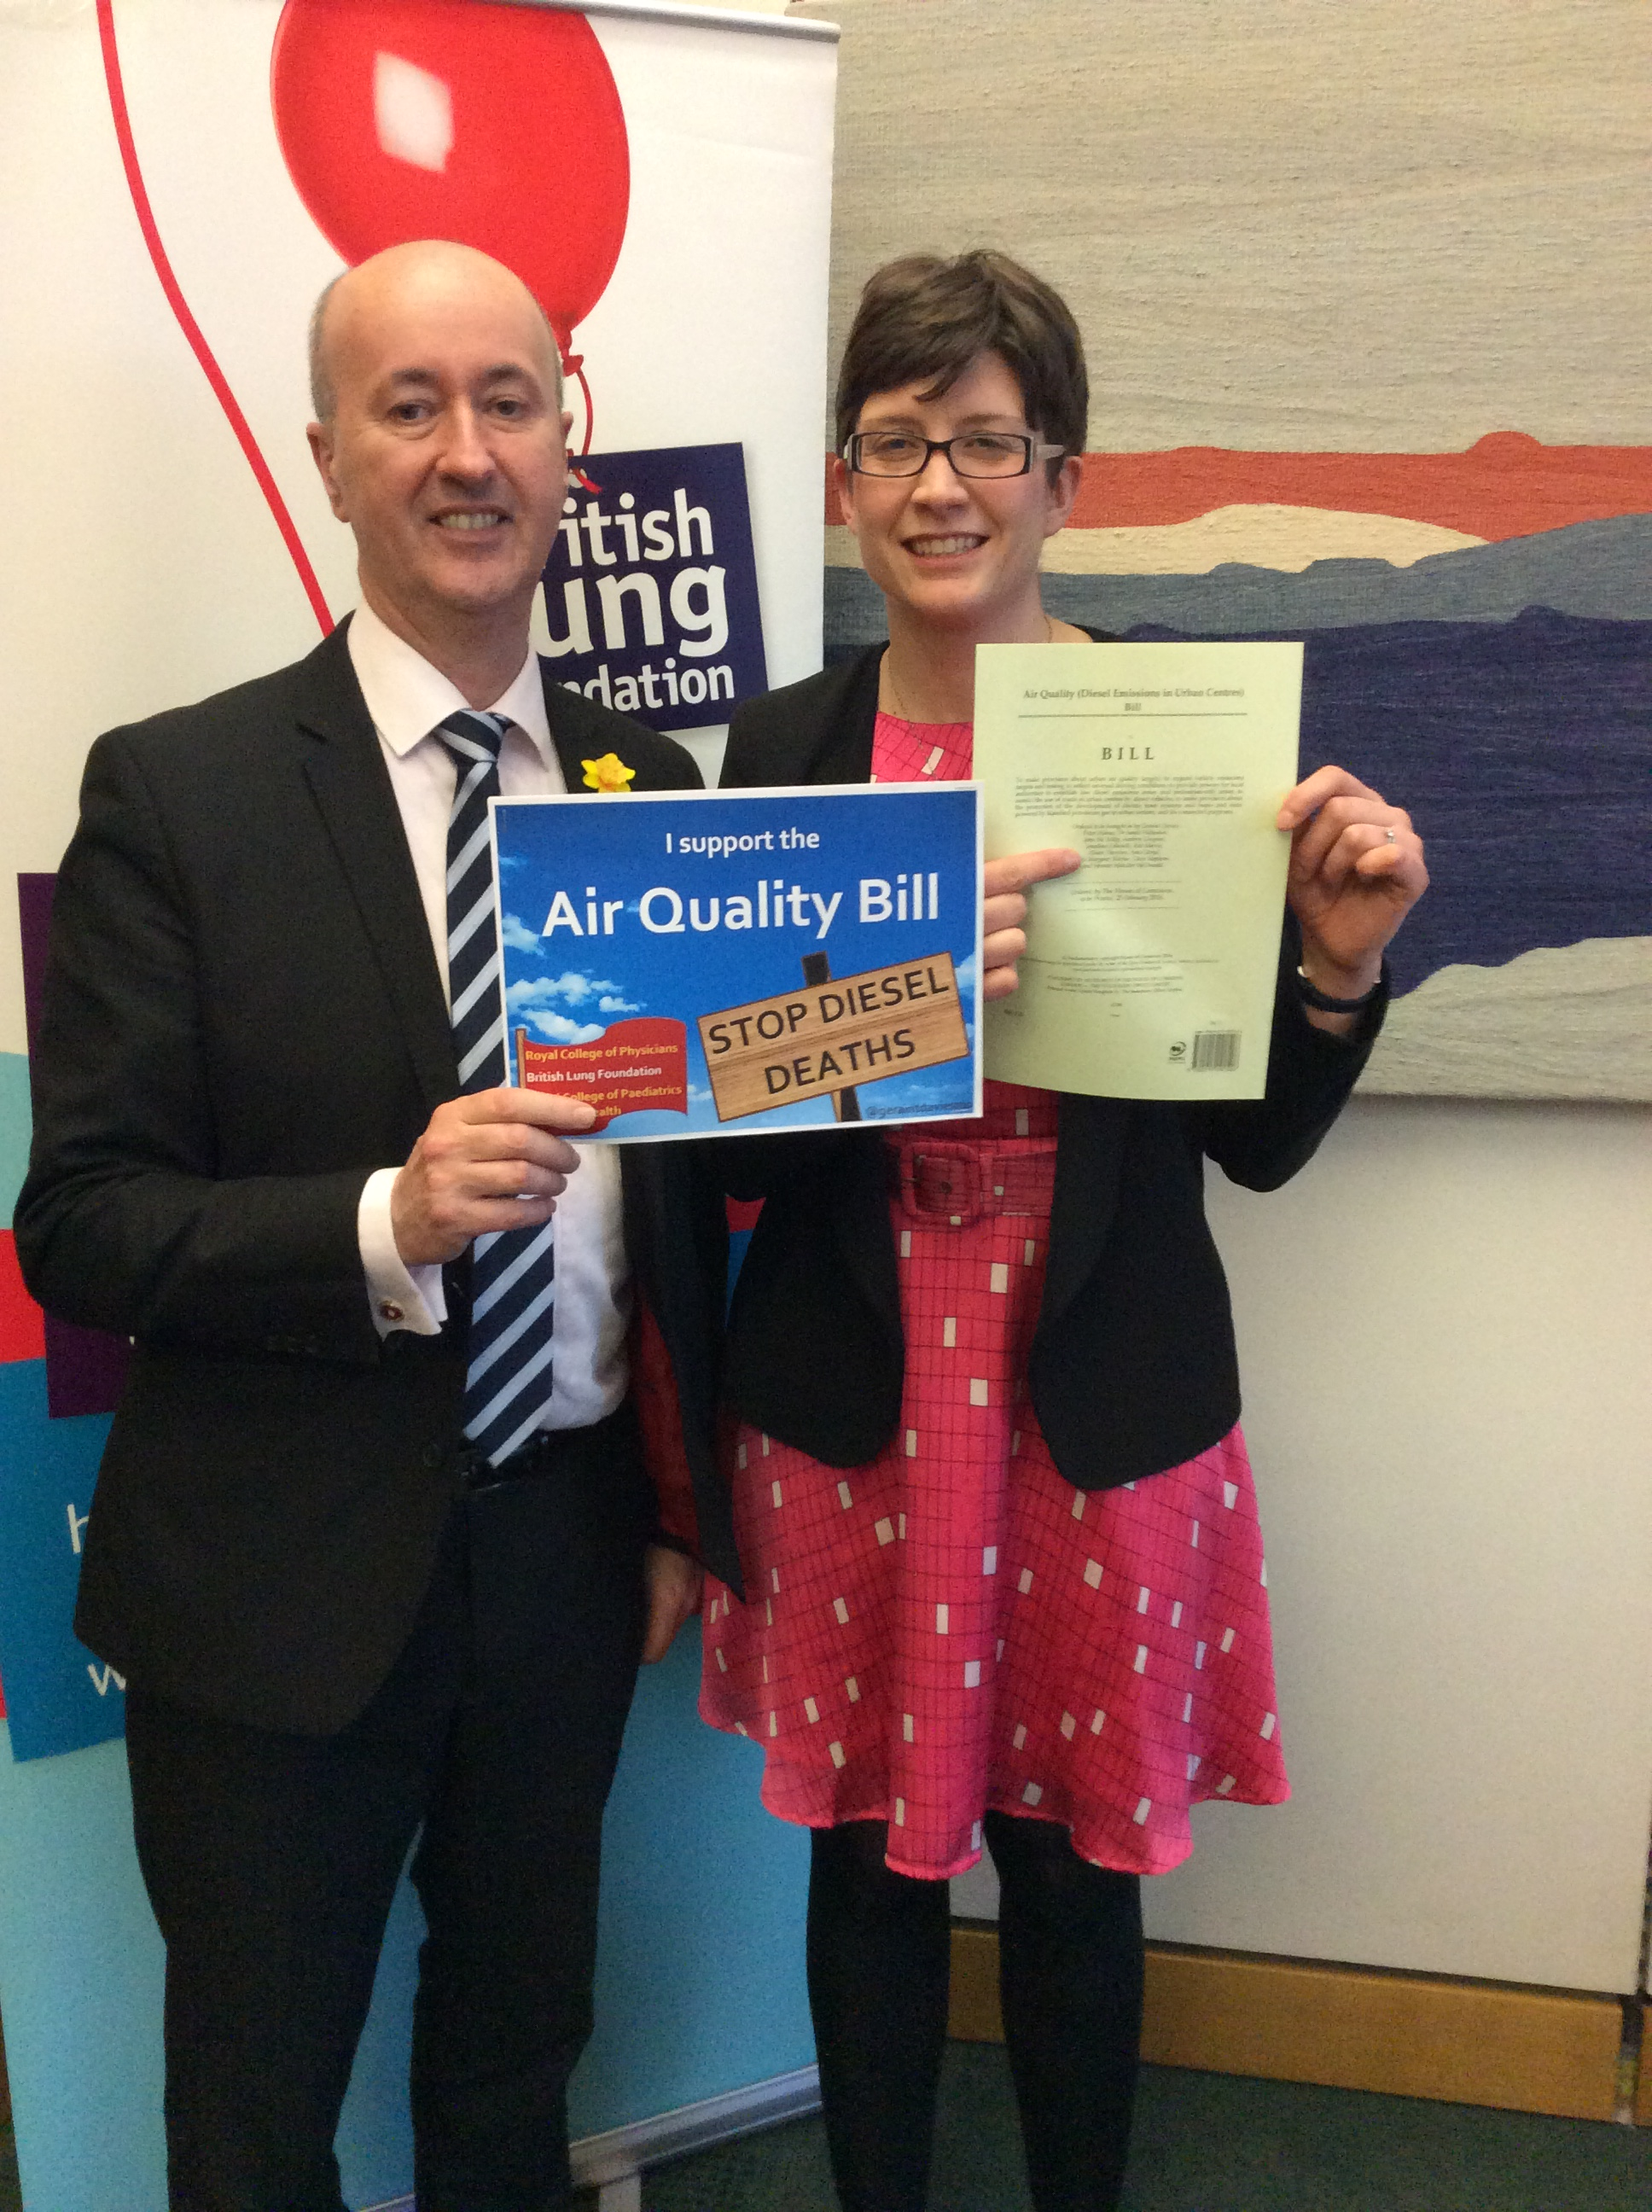 Alison Thewliss MP and Geraint Davies MP present the Air Quality Bill to reduce deaths from diesel emissions